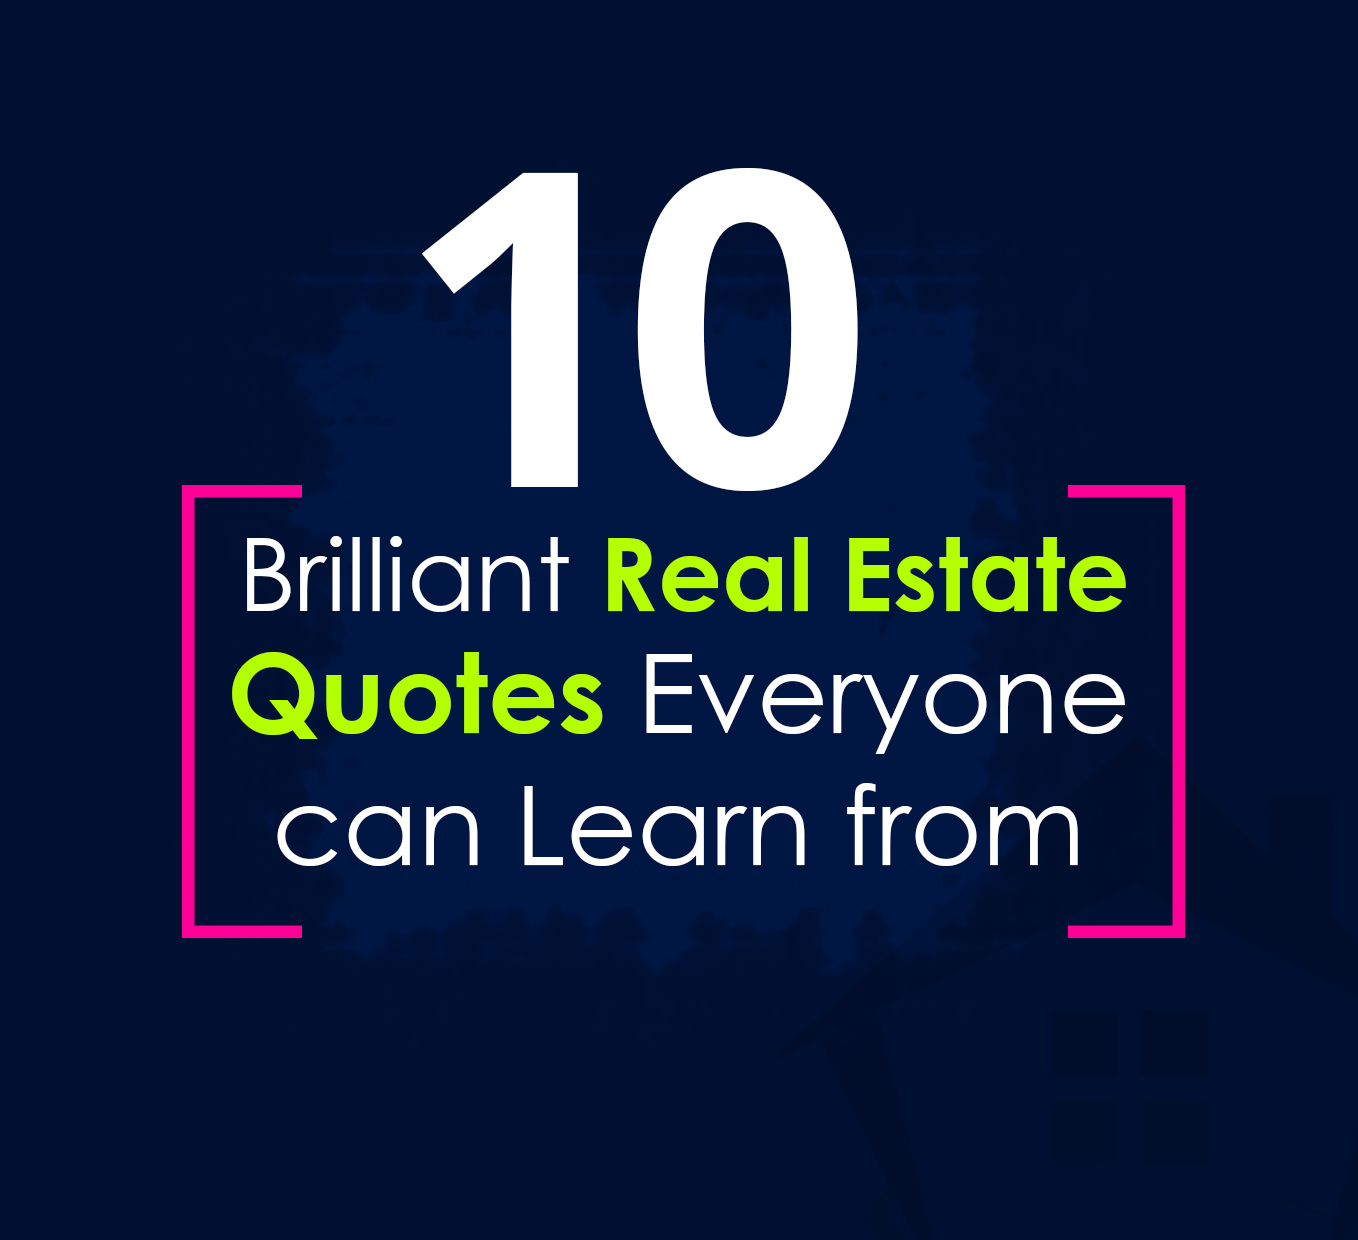 Real Quotes: 10 Brilliant Real Estate Quotes You Can Learn From